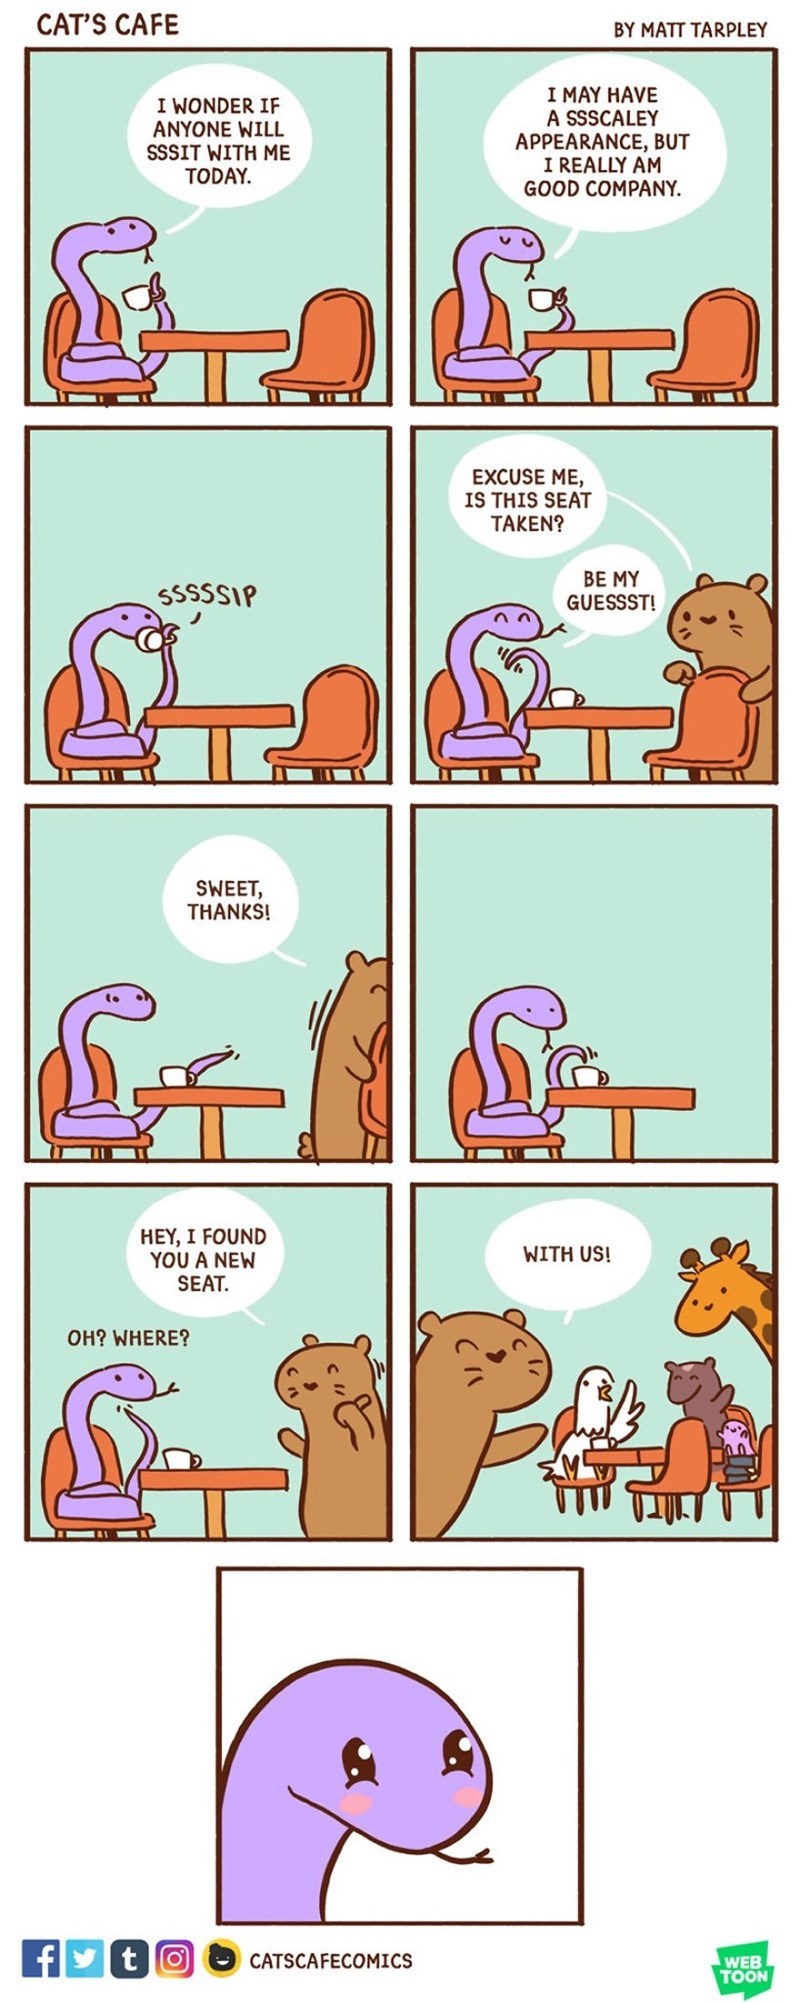 Text - CAT'S CAFE BY MATT TARPLEY I MAY HAVE A SSSCALEY APPEARANCE, BUT I REALLY AM GOOD COMPANY I WONDER IF ANYONE WILL SSSIT WITH ME TODAY EXCUSE ME, IS THIS SEAT TAKEN? BE MY GUESSST! SSSSSIP SWEET, THANKS! HEY, I FOUND YOU A NEW SEAT. WITH US! OH? WHERE? f tO CATSCAFECOMICS WEB TOON